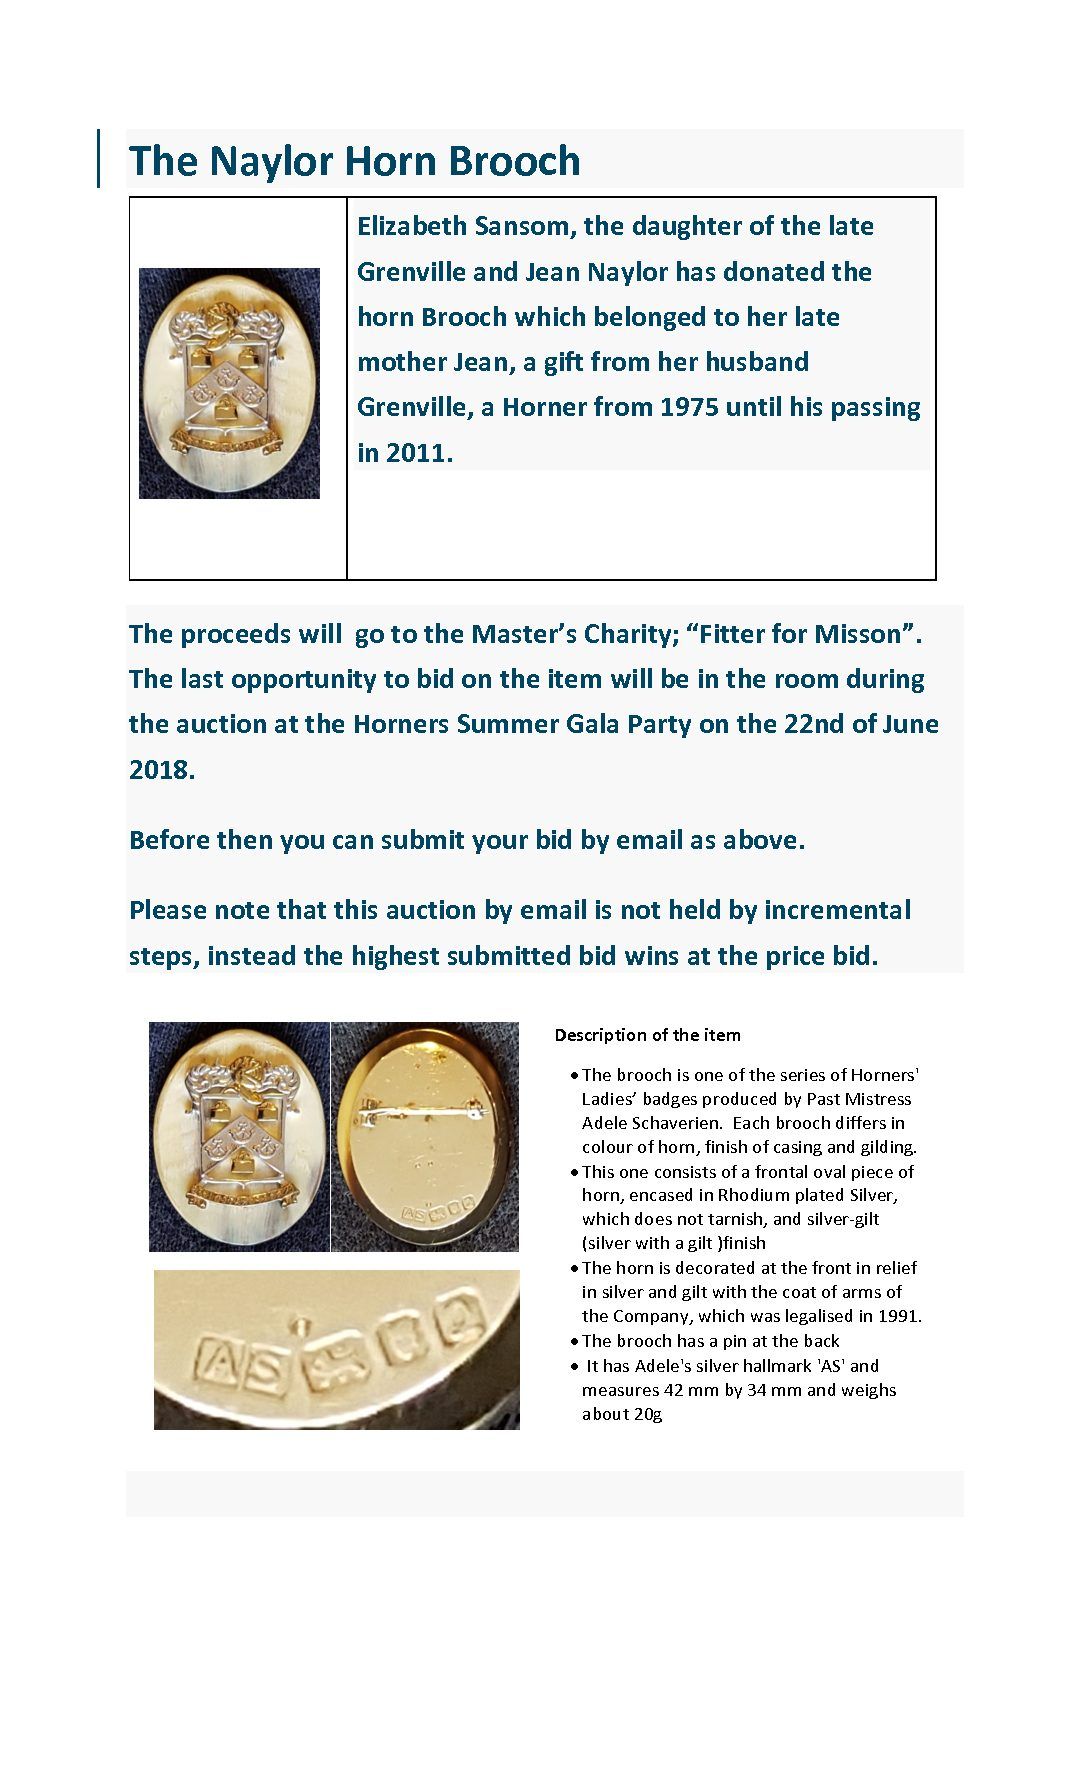 The Naylor Brooch Auction - The Worshipful Company of Horners